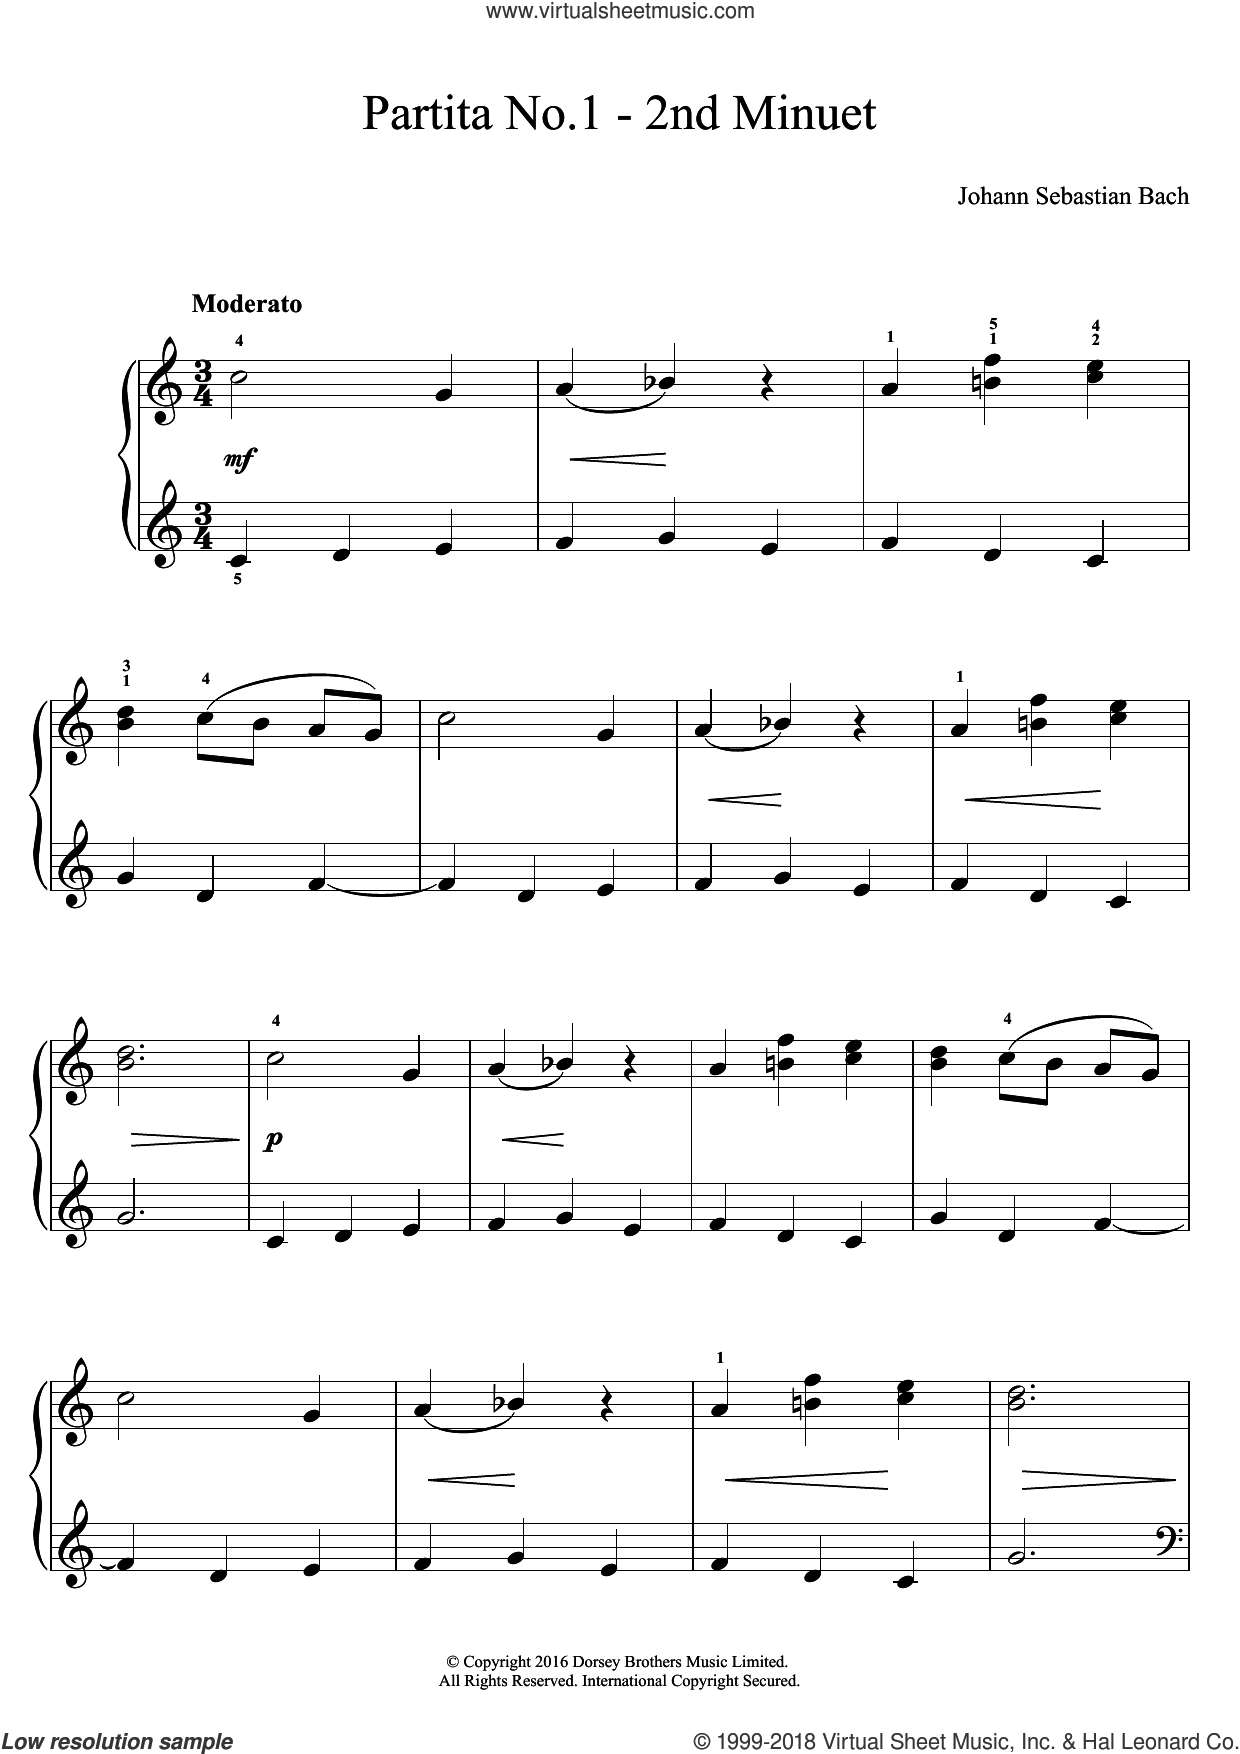 Partita No. 1 - 2nd Minuet sheet music for piano solo by Johann Sebastian Bach. Score Image Preview.